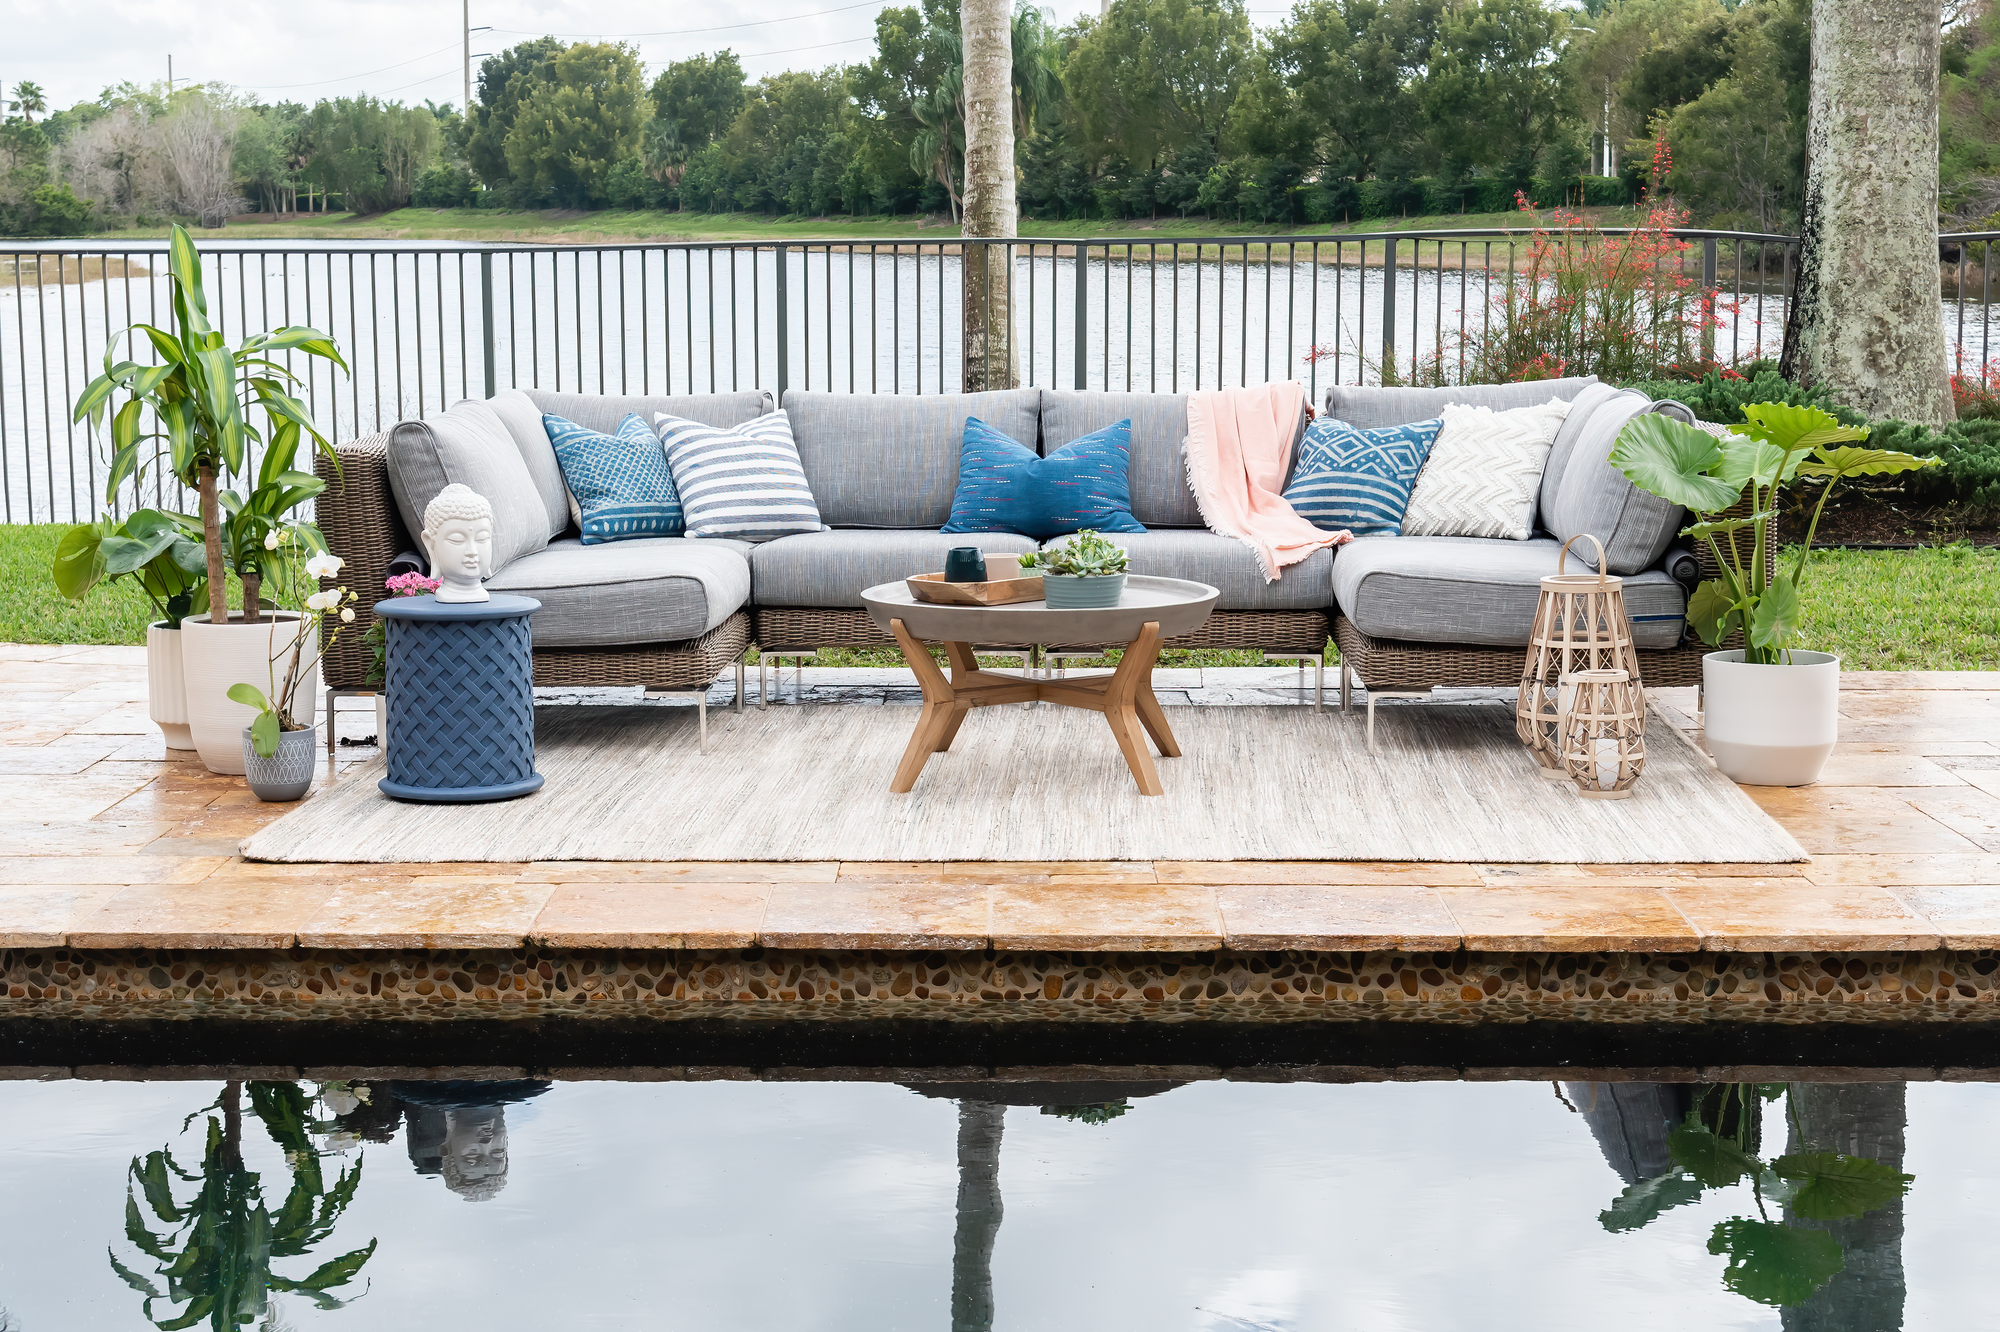 How to Use Furniture, Plant Life, and Personal Style to Create an Outdoor Sanctuary